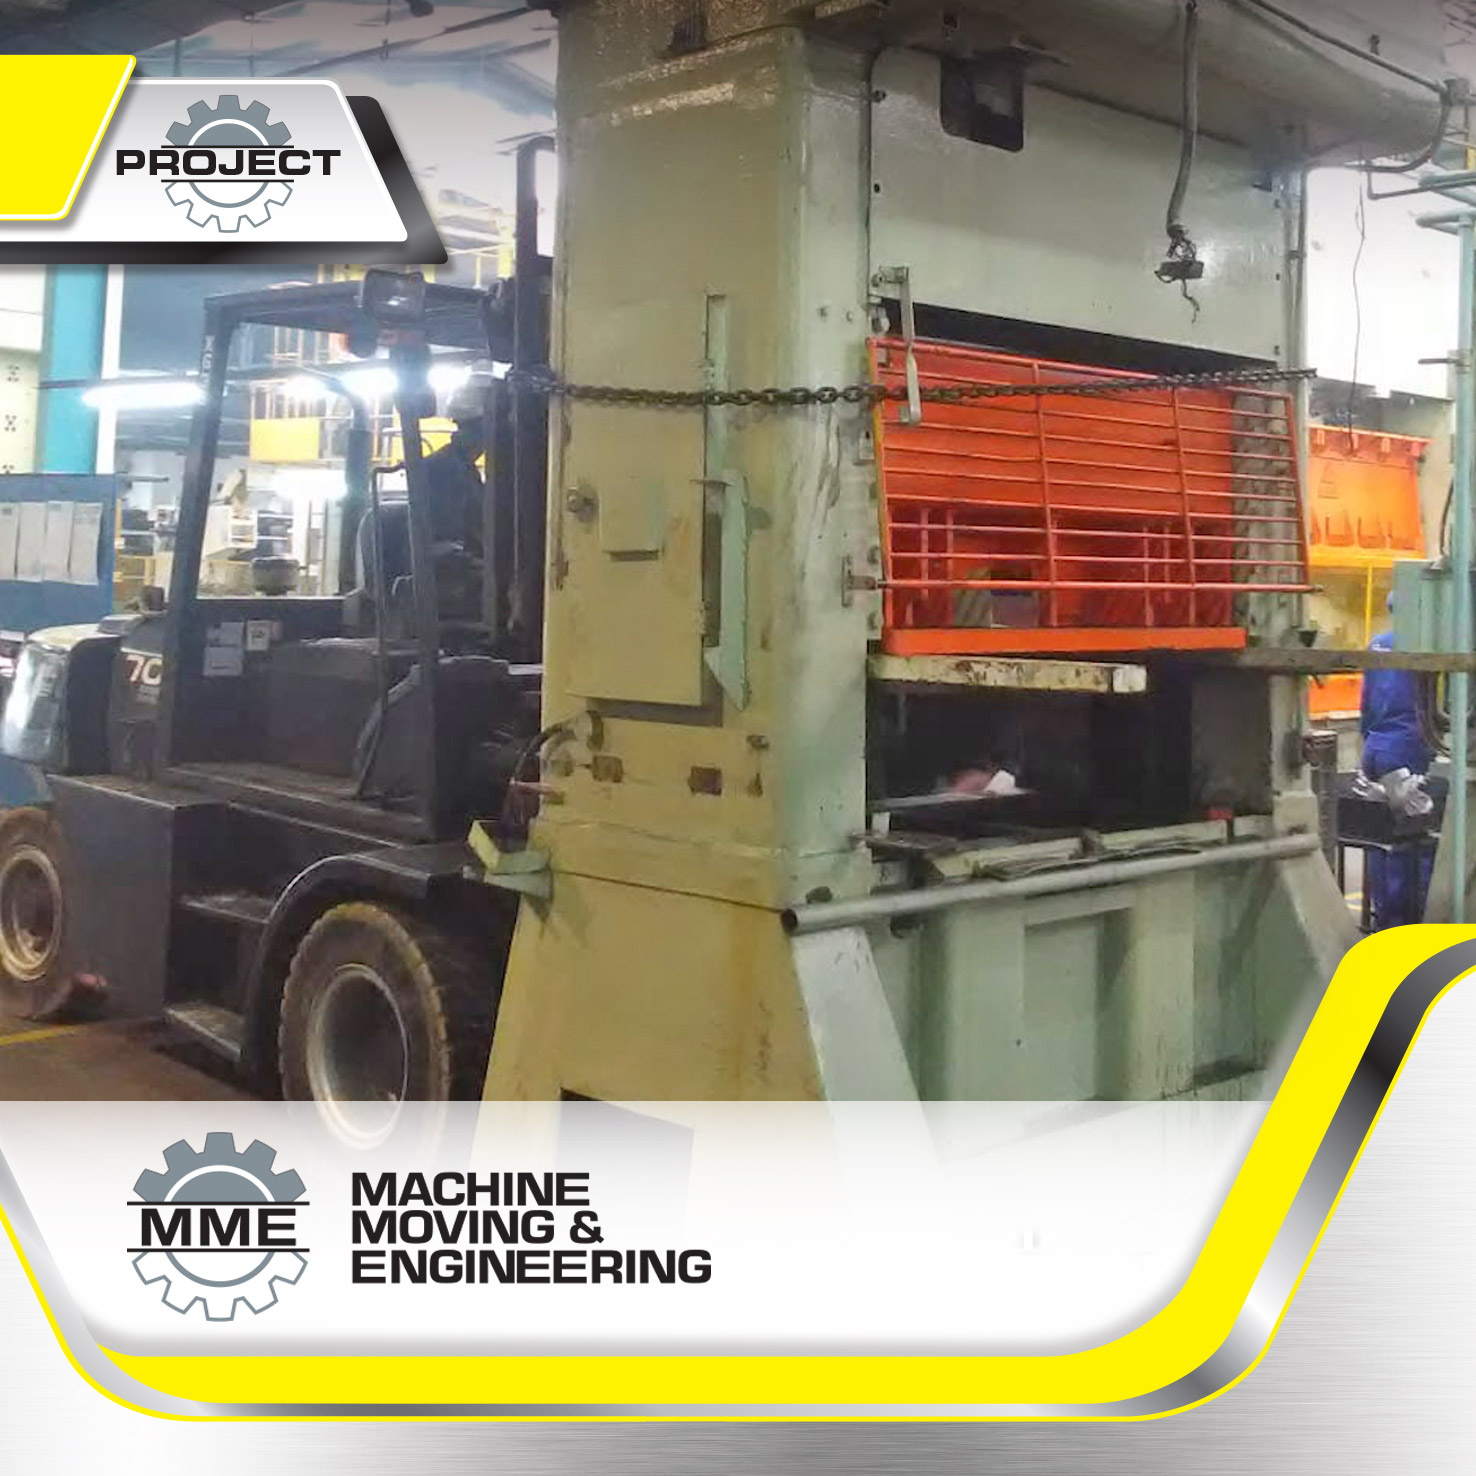 press removal mme-projects-mme-machine-moving-engineering-machinery-equipment-gauteng-kwazulu-natal-south-africa-powerful-forklift